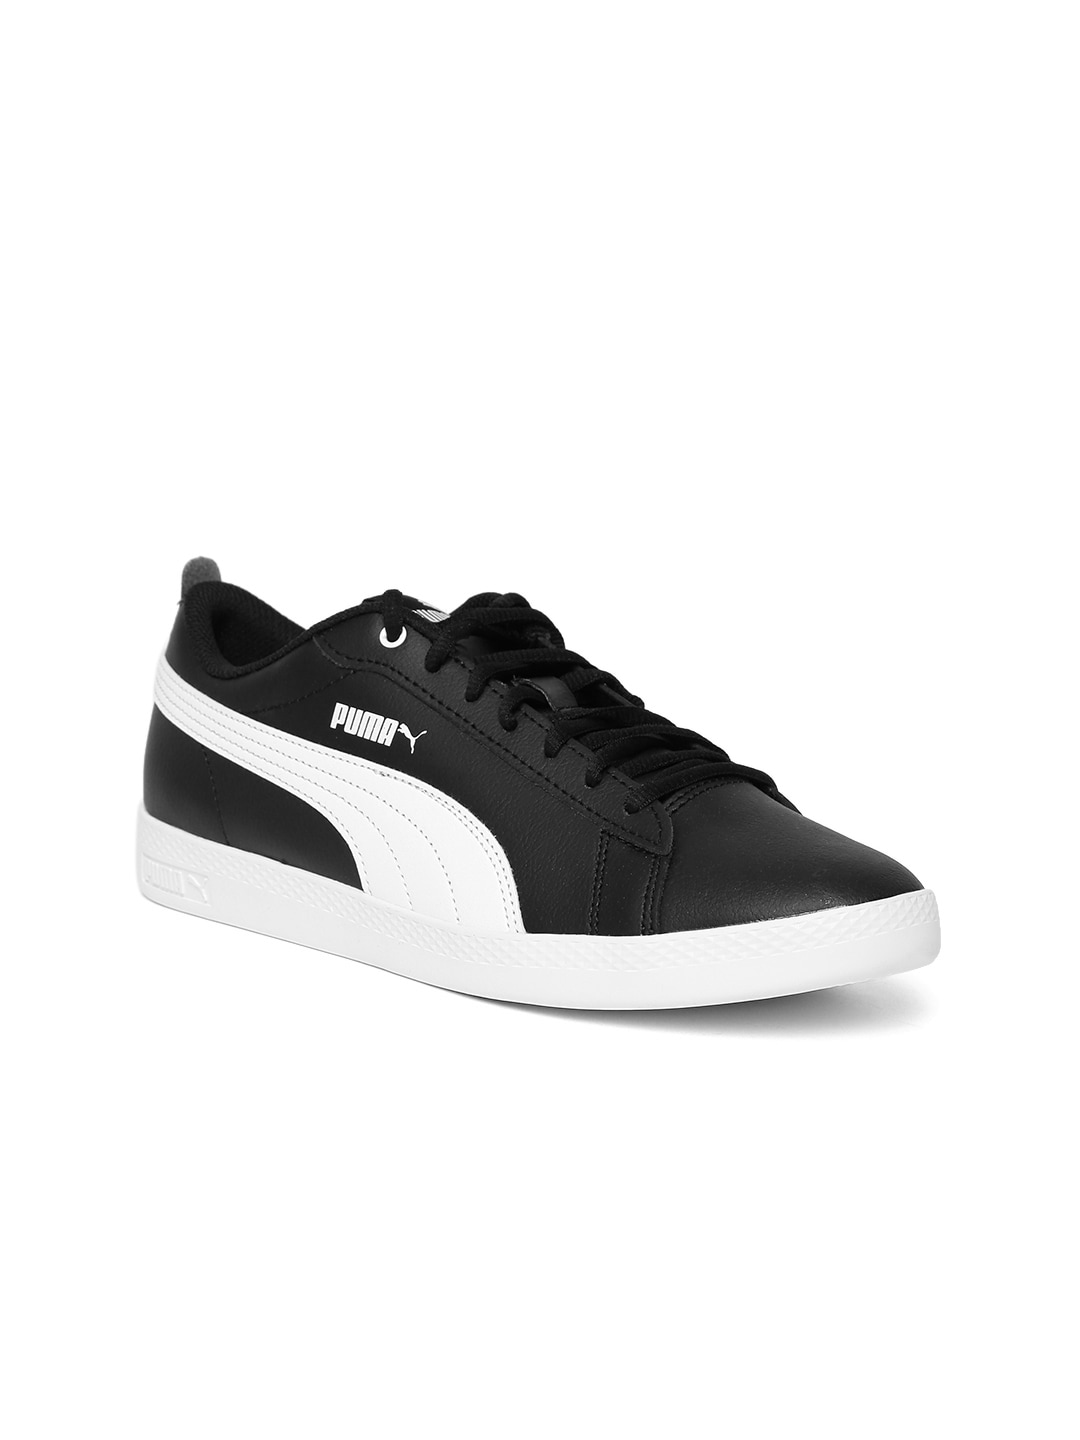 eac4b2ea1d65 Branded Shoes For Puma Casual - Buy Branded Shoes For Puma Casual online in  India